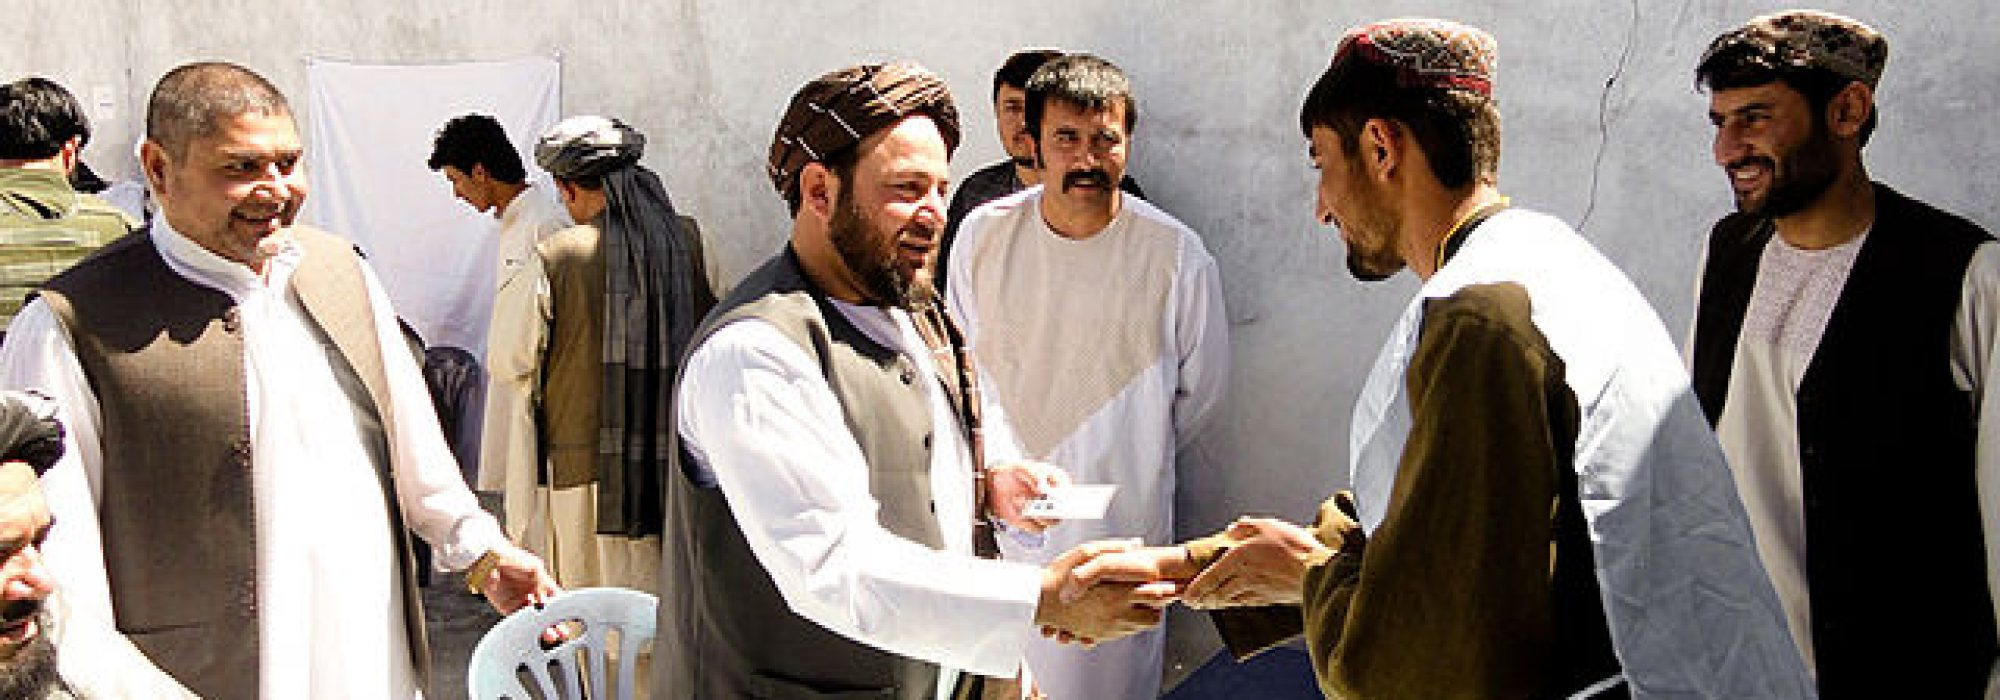 Amir_Mohammad_Akhundzada,_center,_the_governor_of_Uruzgan_province,_Afghanistan,_presents_a_new_voter_registration_card_to_a_Tarin_Kowt_resident_in_the_province_May_26,_2013_130526-D-ZZ999-001